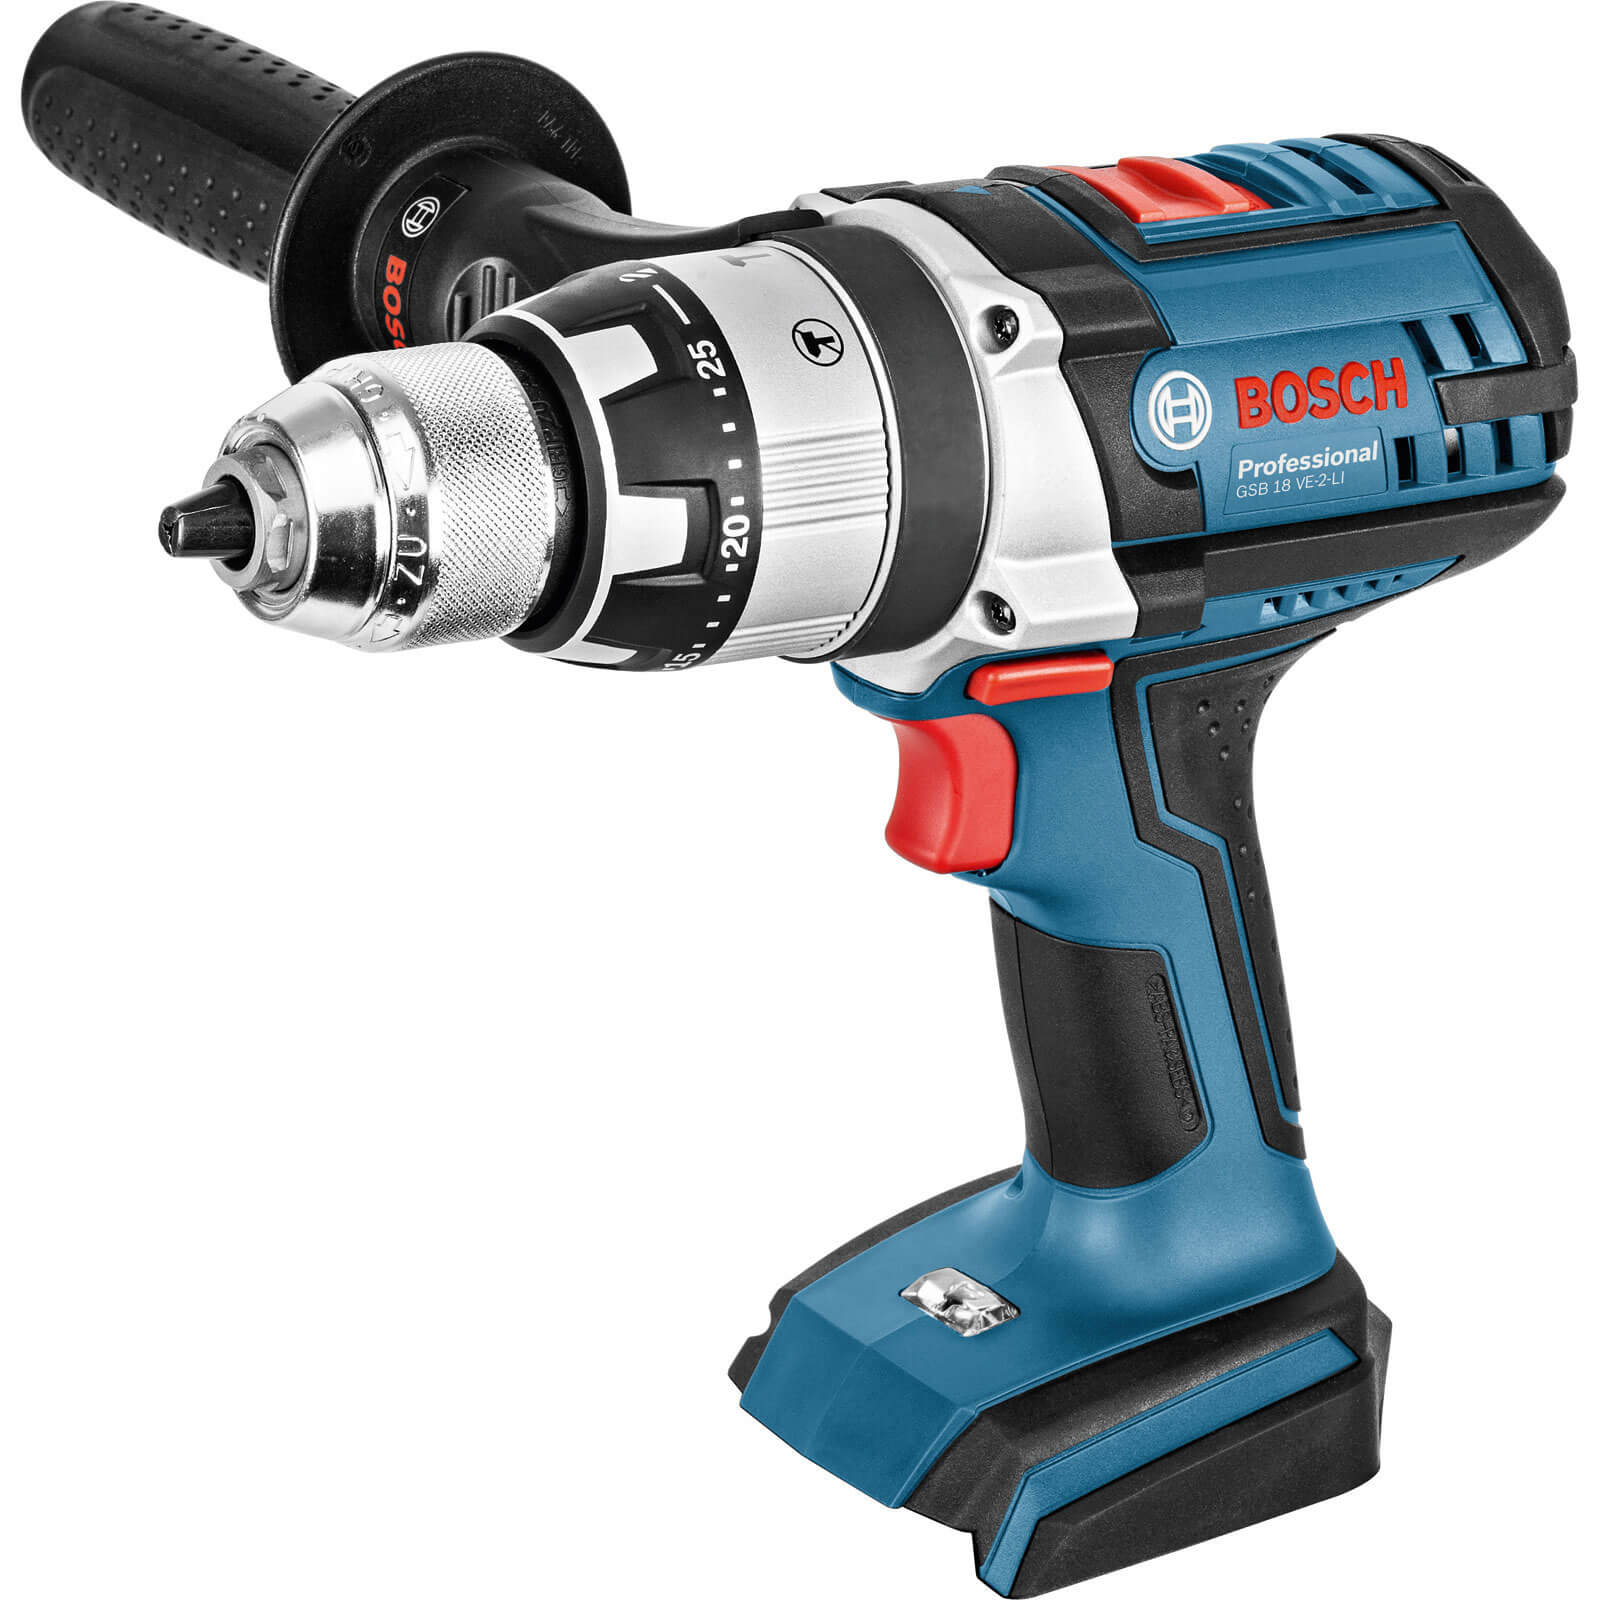 Bosch GSB 18 VE2LI 18v Cordless Combi Drill No Batteries No Charger No Case